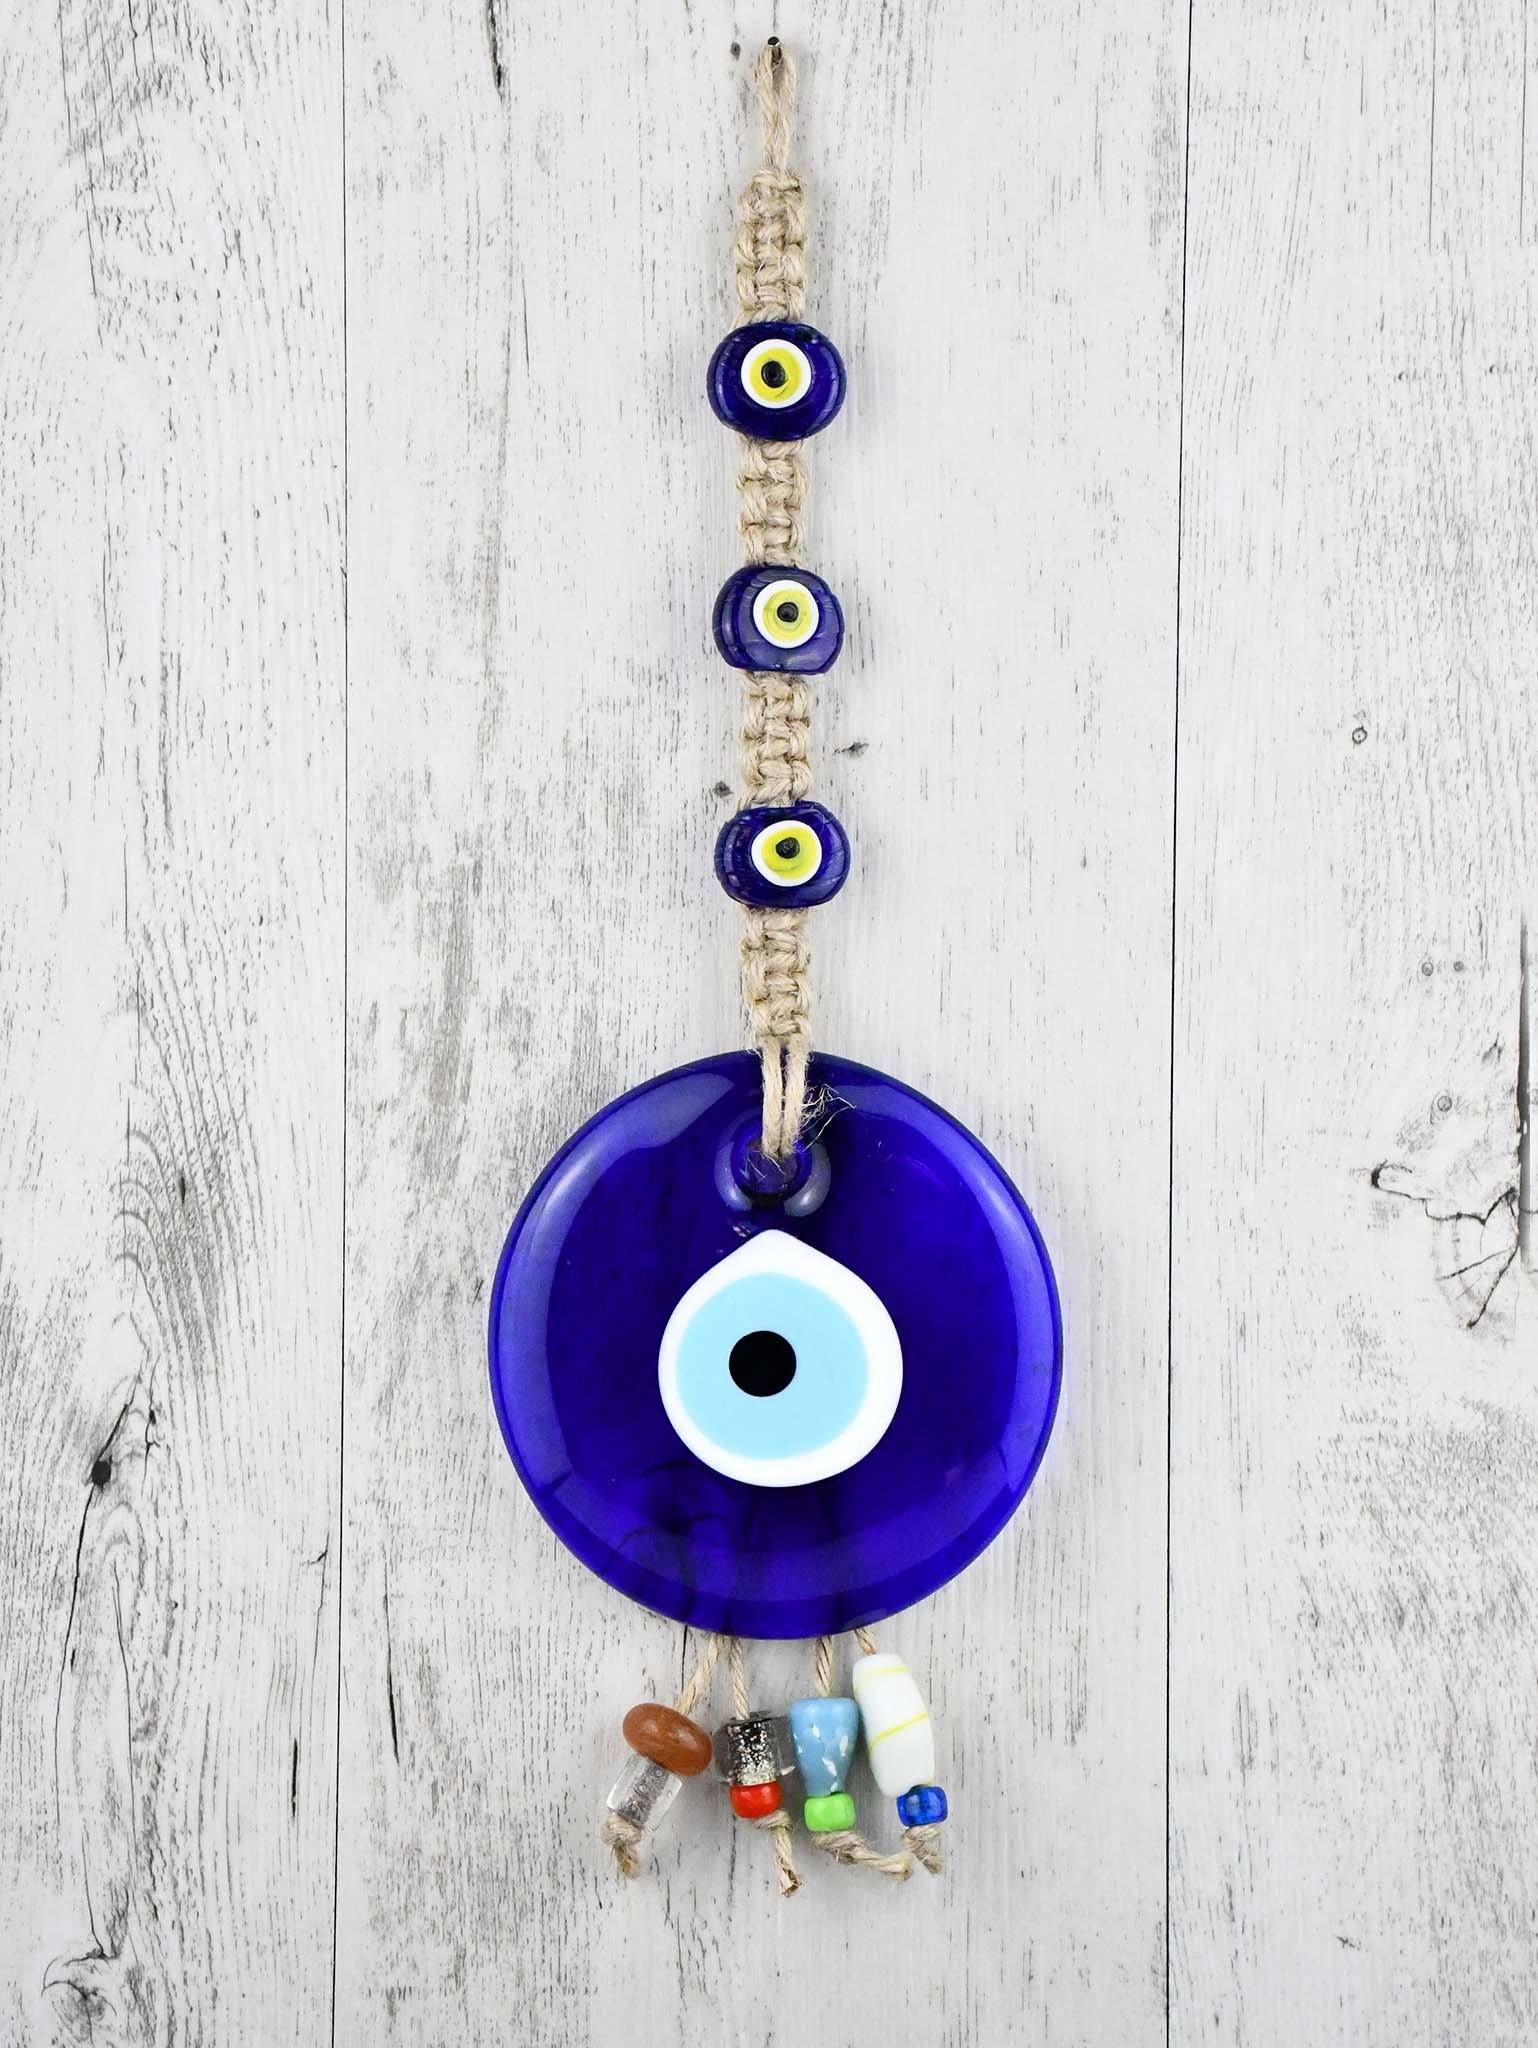 Evil Eye Ornament Beads Rope Tied Large